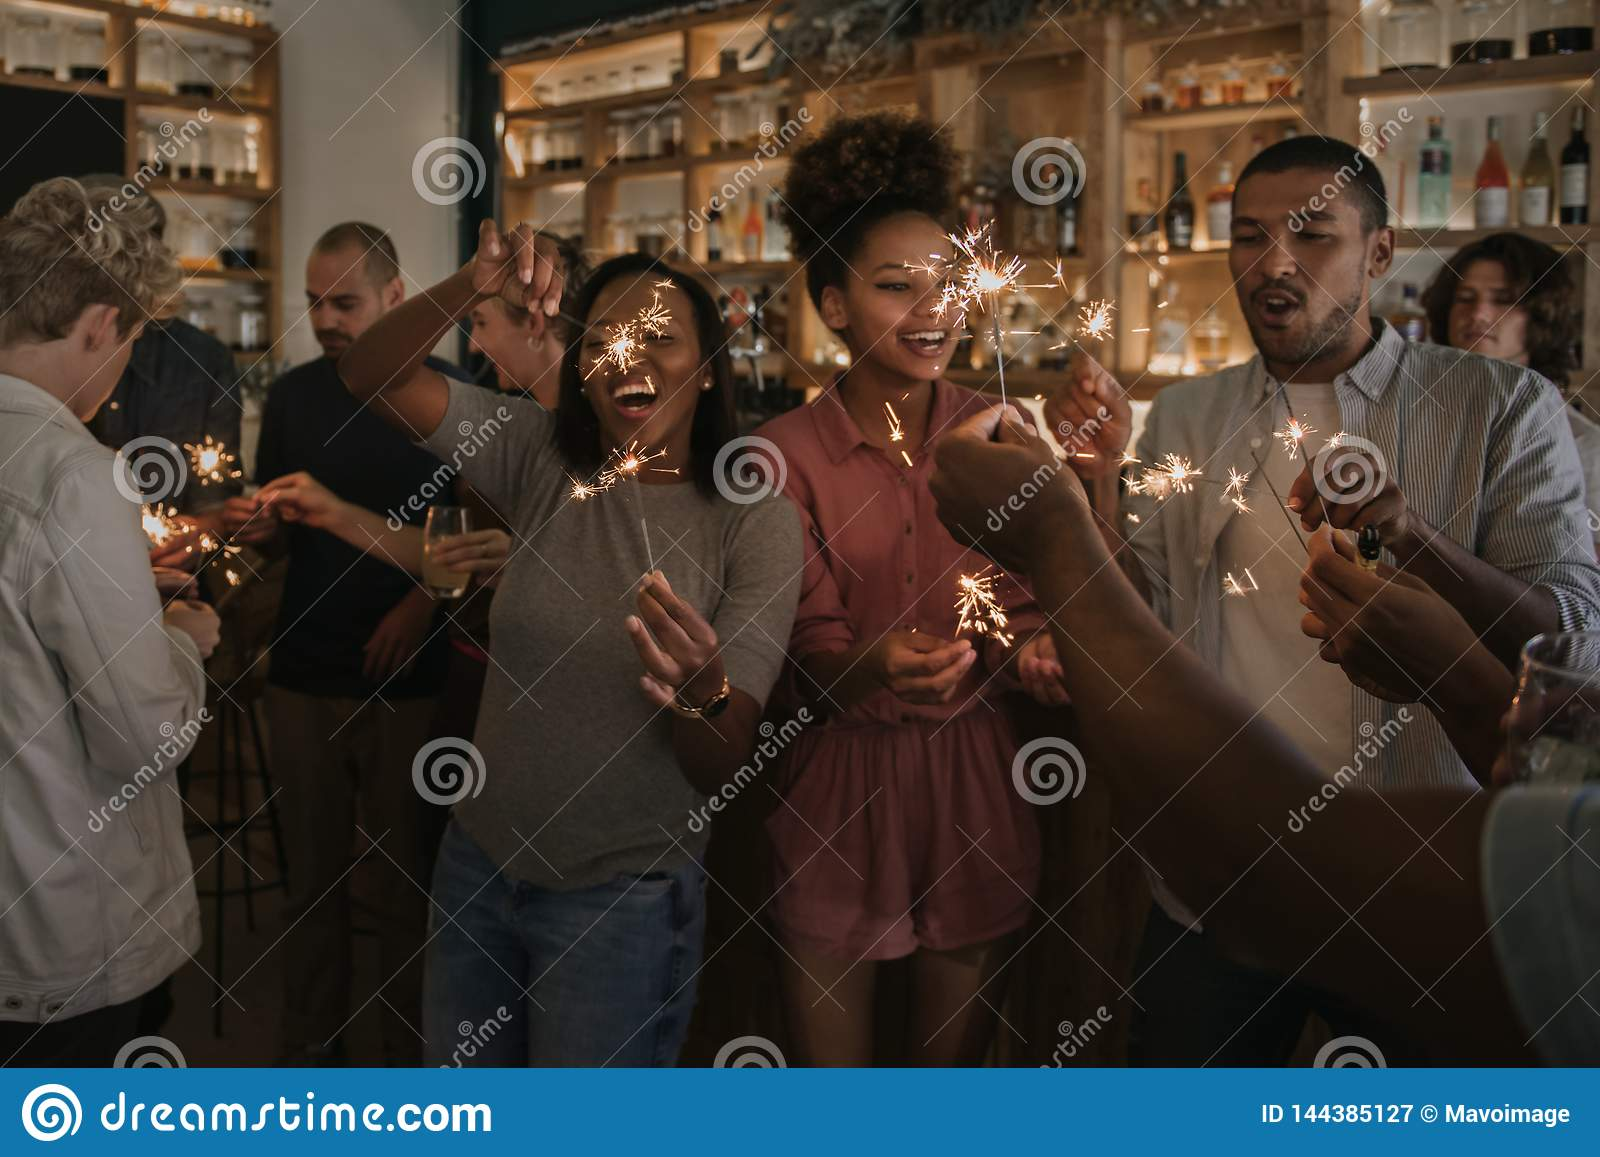 Laughing friends celebrating with sparklers in a bar at night